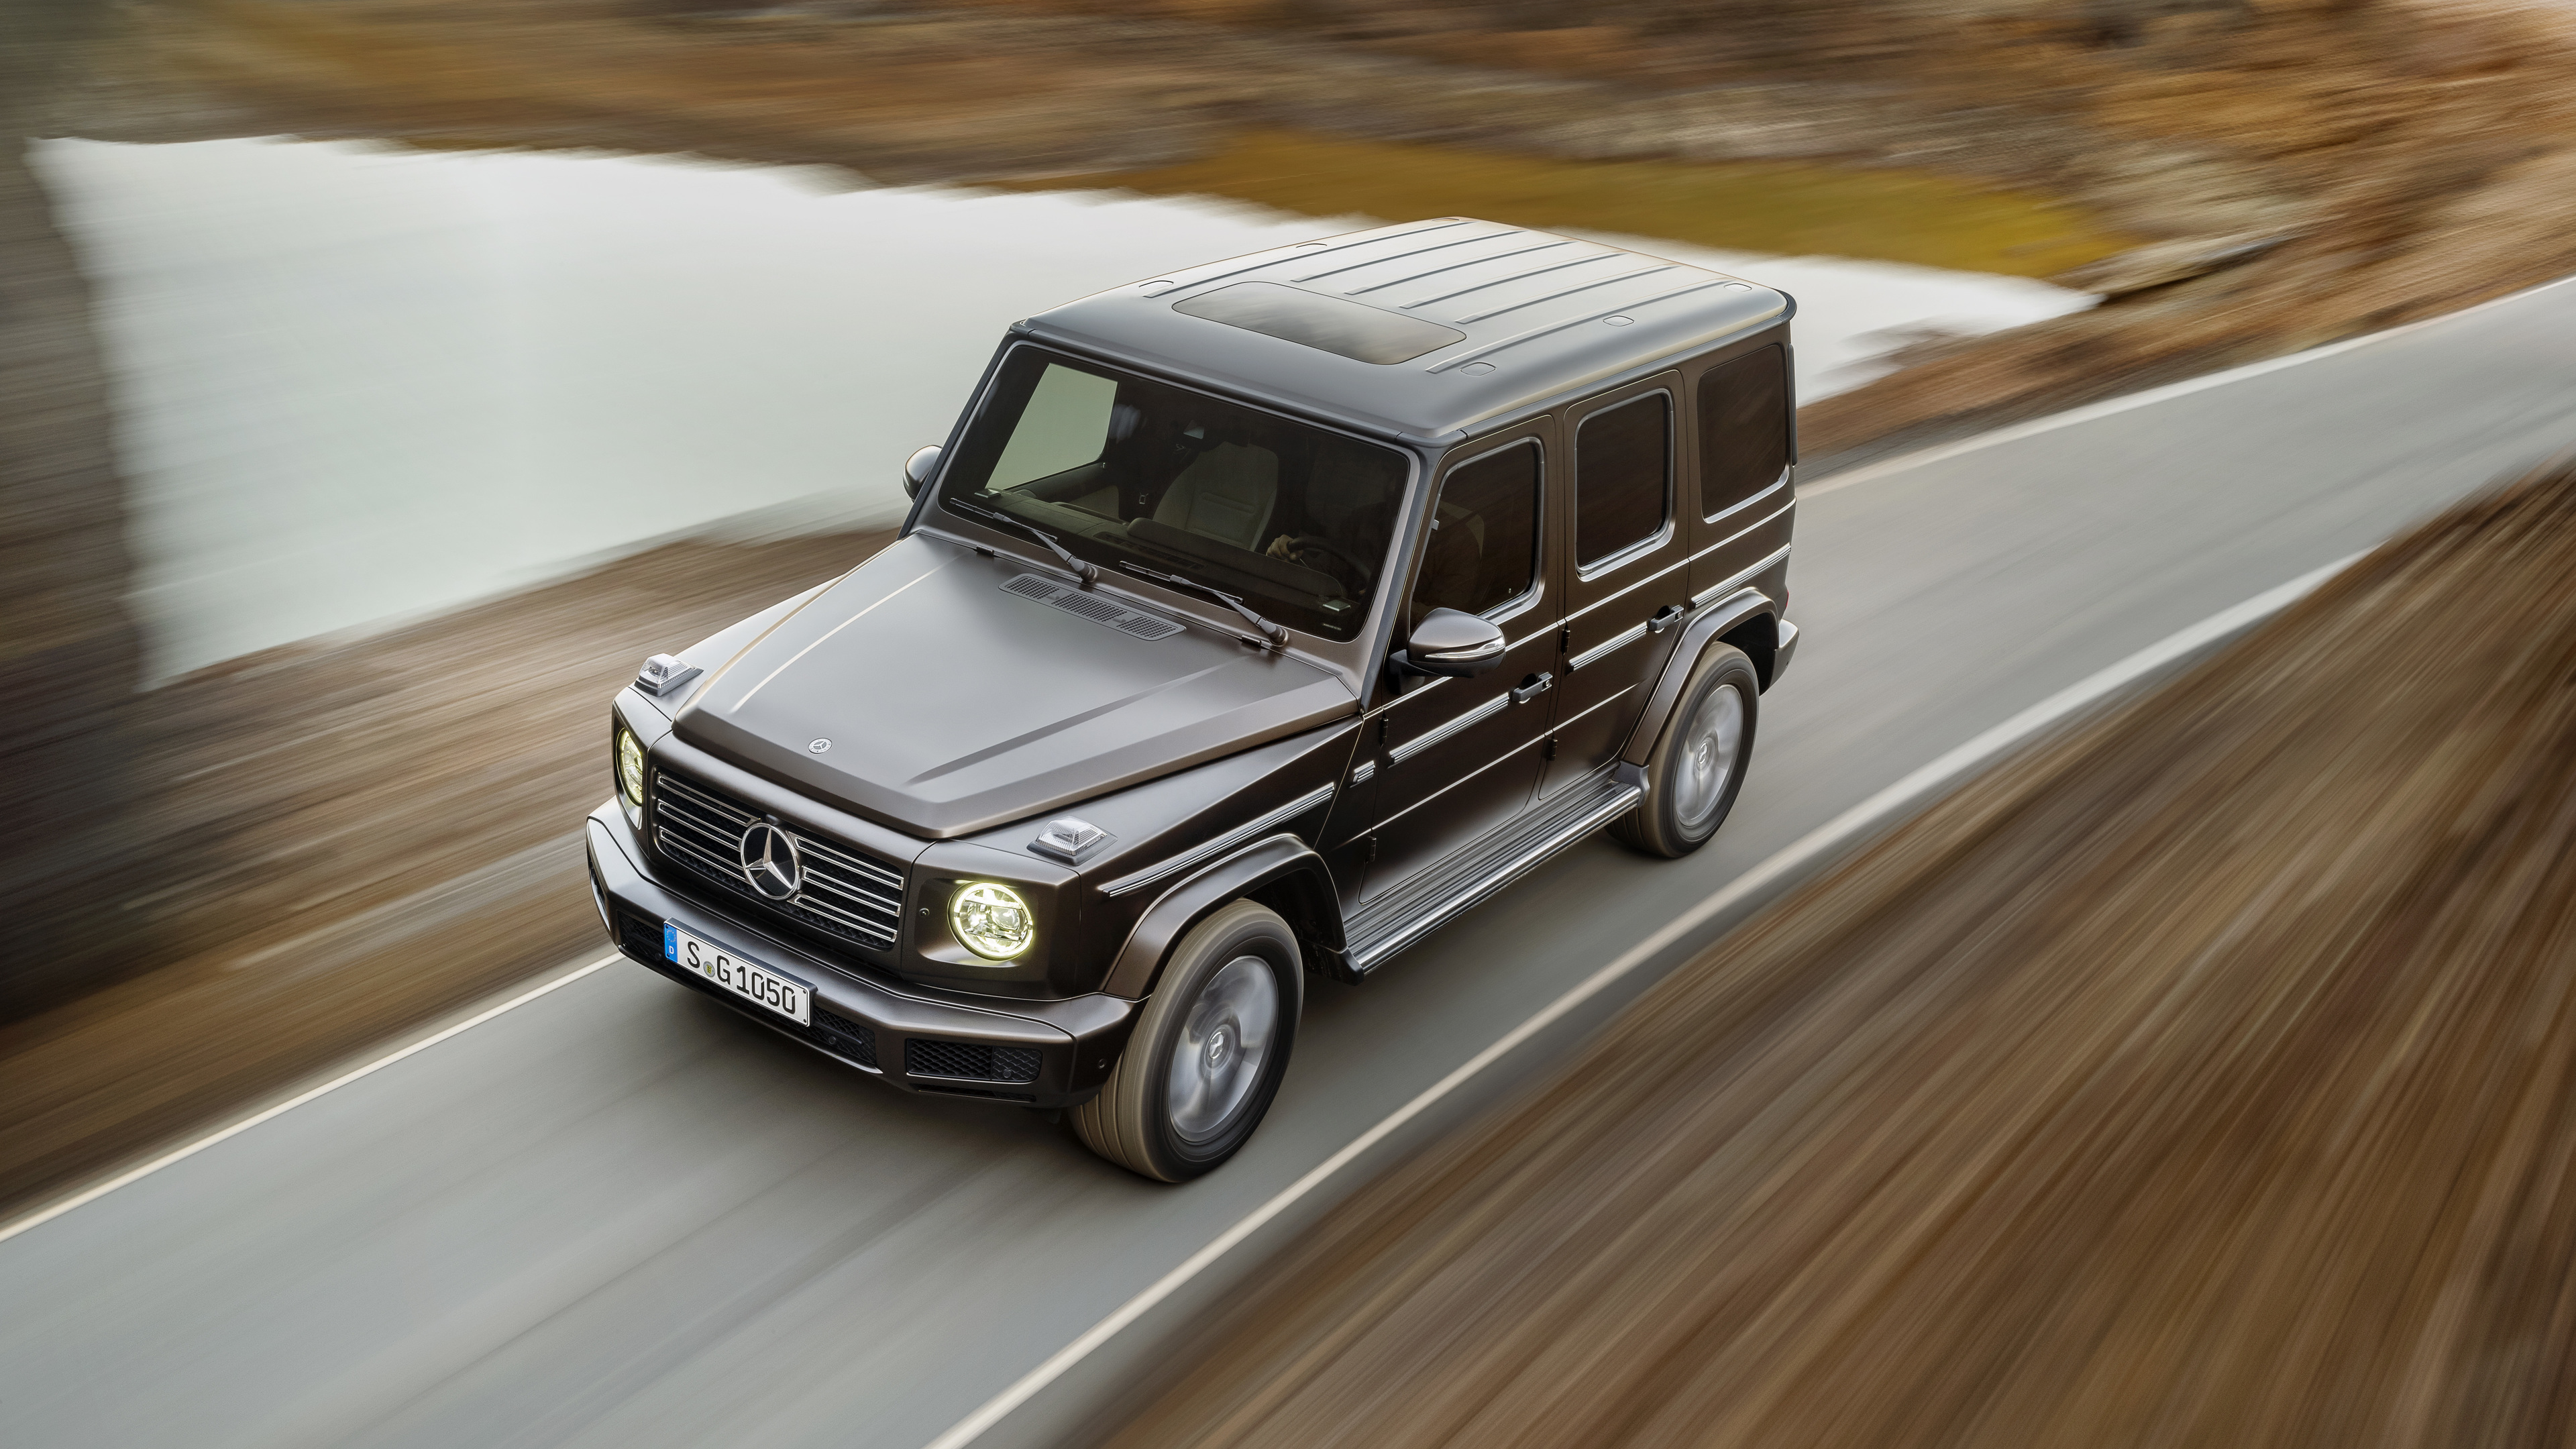 2019 mercedes g class 1539109181 - 2019 Mercedes G Class - suv wallpapers, mercedes wallpapers, mercedes g class wallpapers, mercedes benz wallpapers, hd-wallpapers, cars wallpapers, 8k wallpapers, 5k wallpapers, 4k-wallpapers, 2019 cars wallpapers